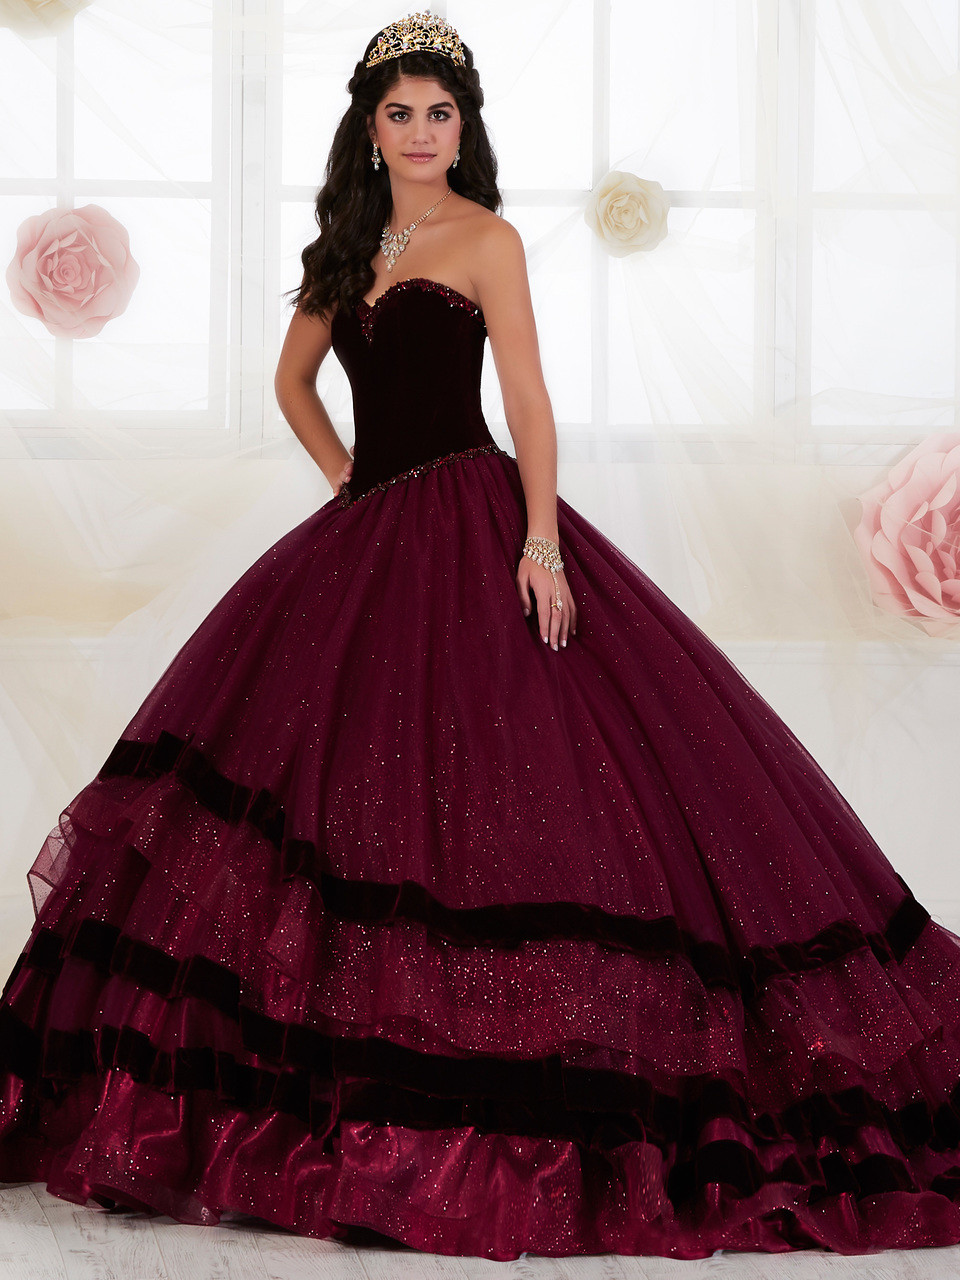 1bad0a0a2c Tiffany Designs. $590.00. Sweetheart Velvet Quinceanera Collection Ball Gown  Dress 26907. Free shipping